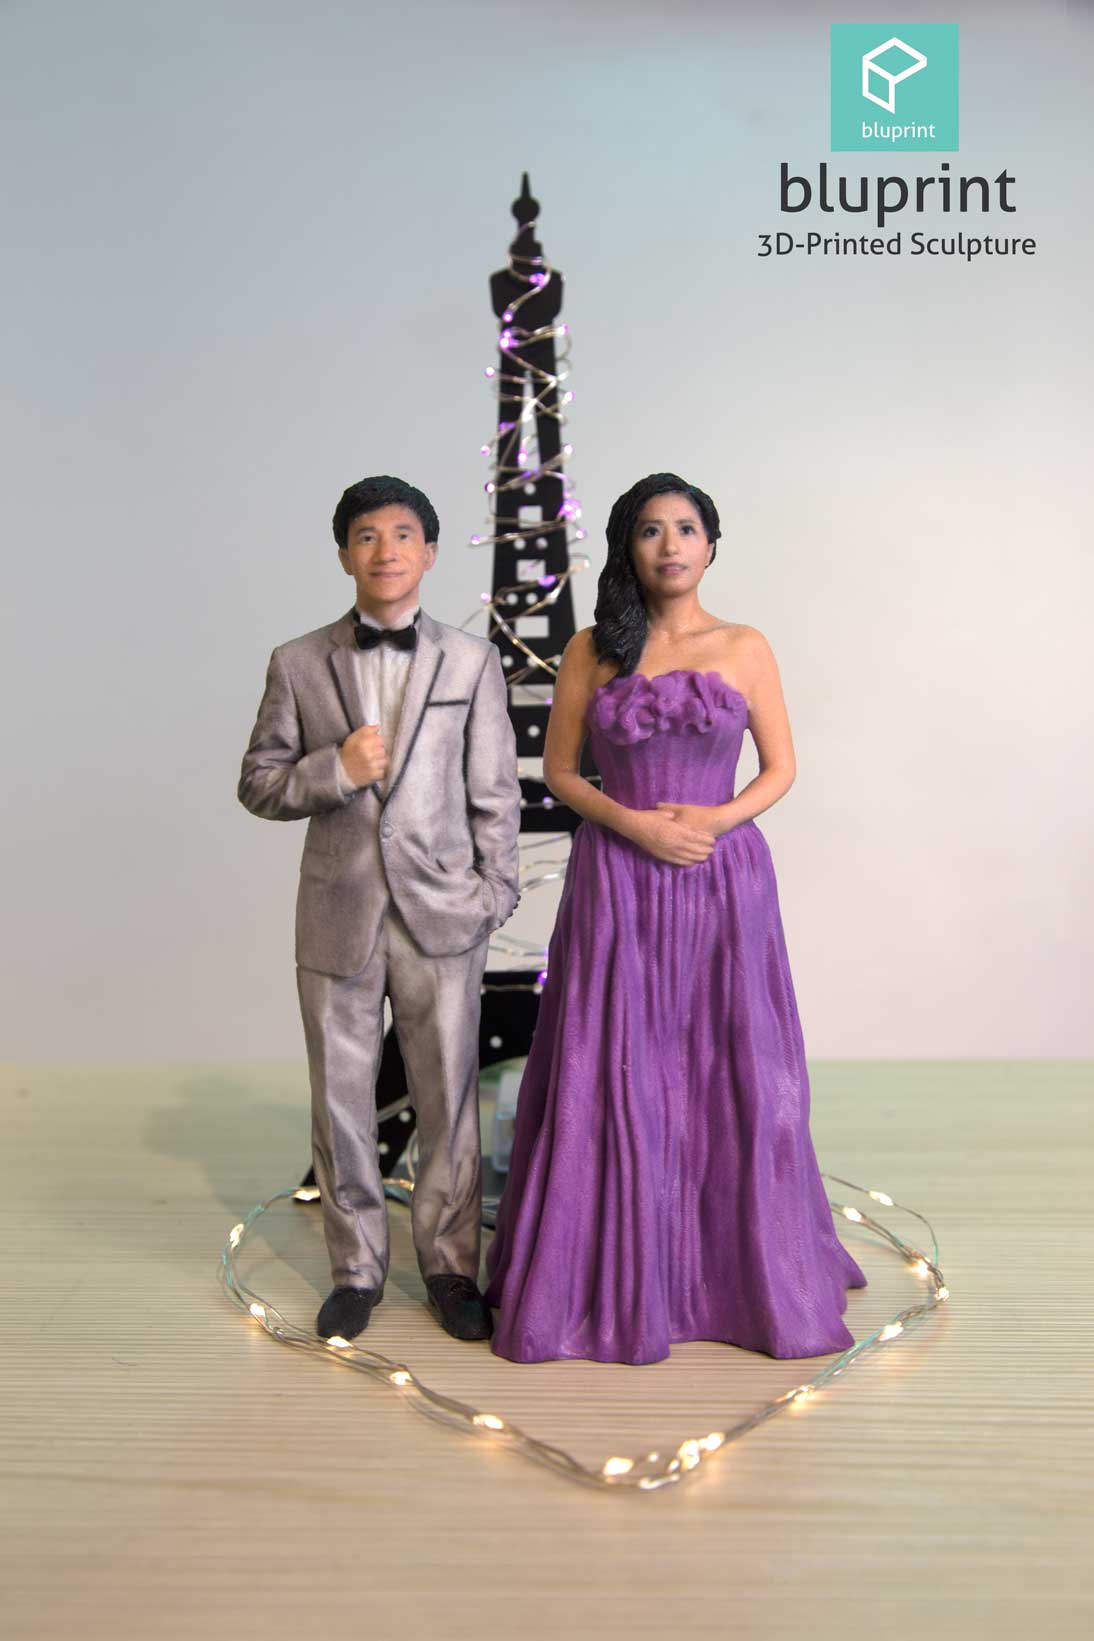 bluprint 3d figure sculpture hong kong wedding bride and groom